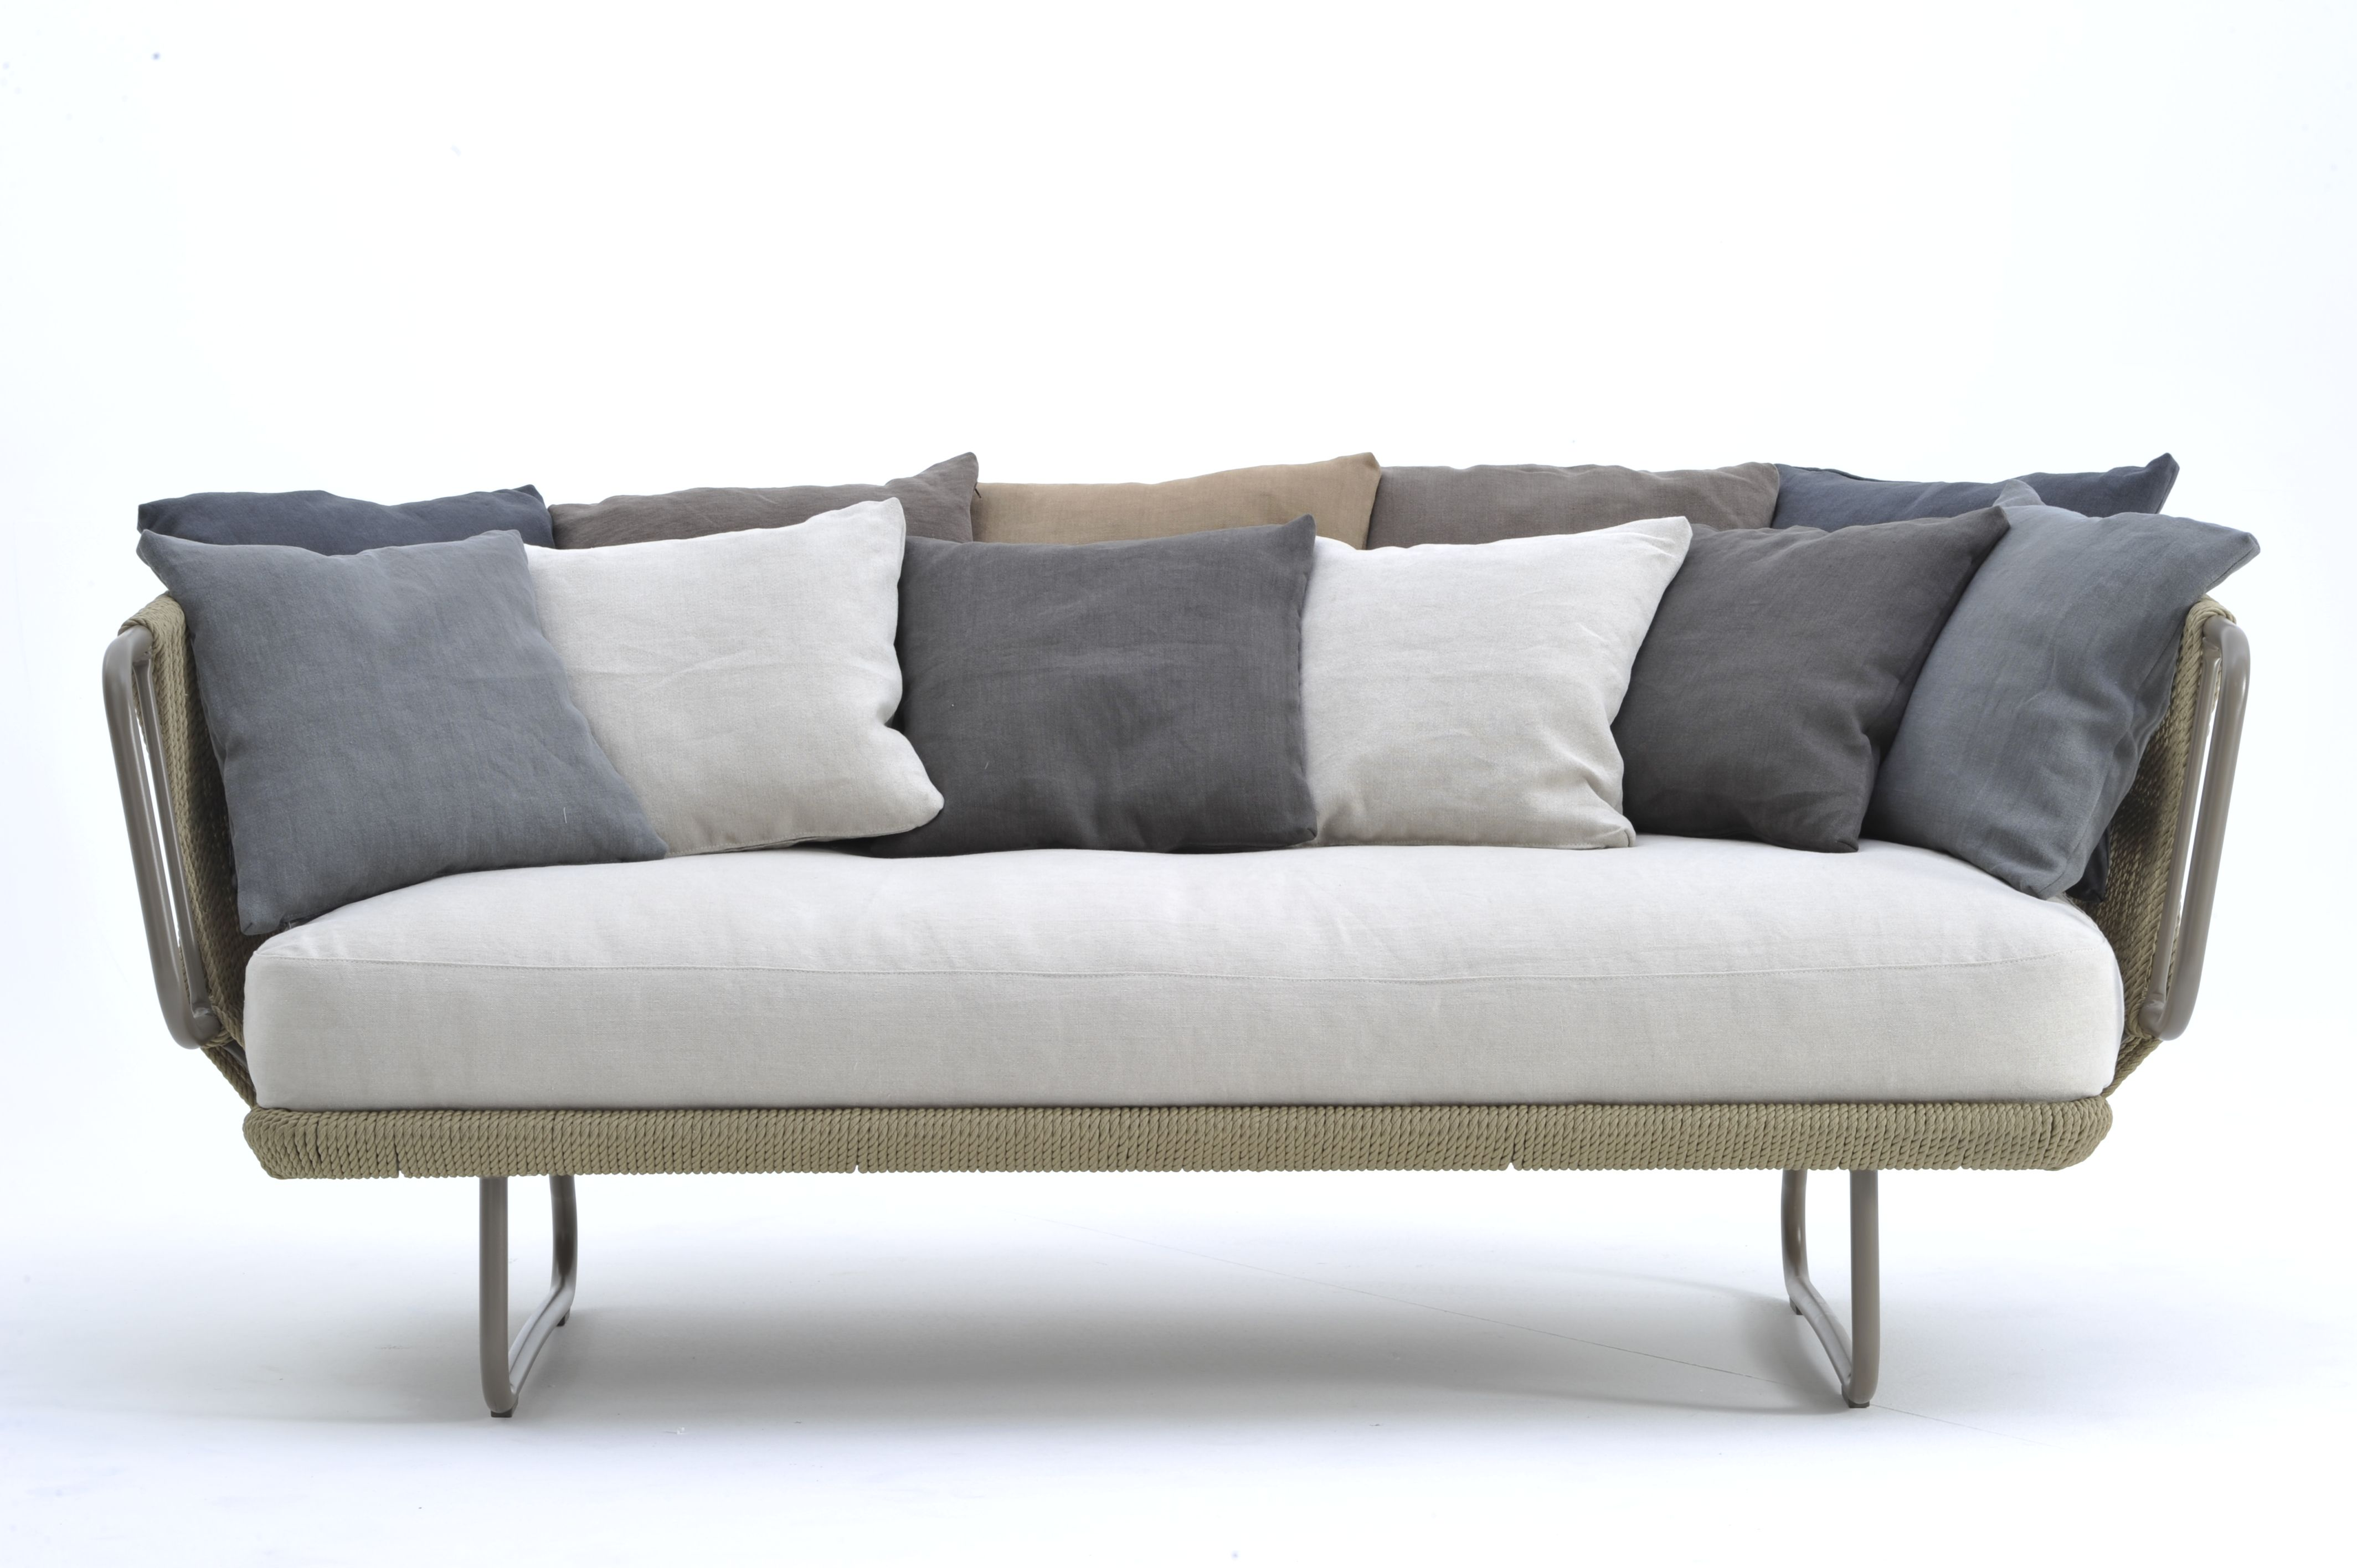 Astounding Babylon Large Sofa Front View Giopato Coombes For Gmtry Best Dining Table And Chair Ideas Images Gmtryco